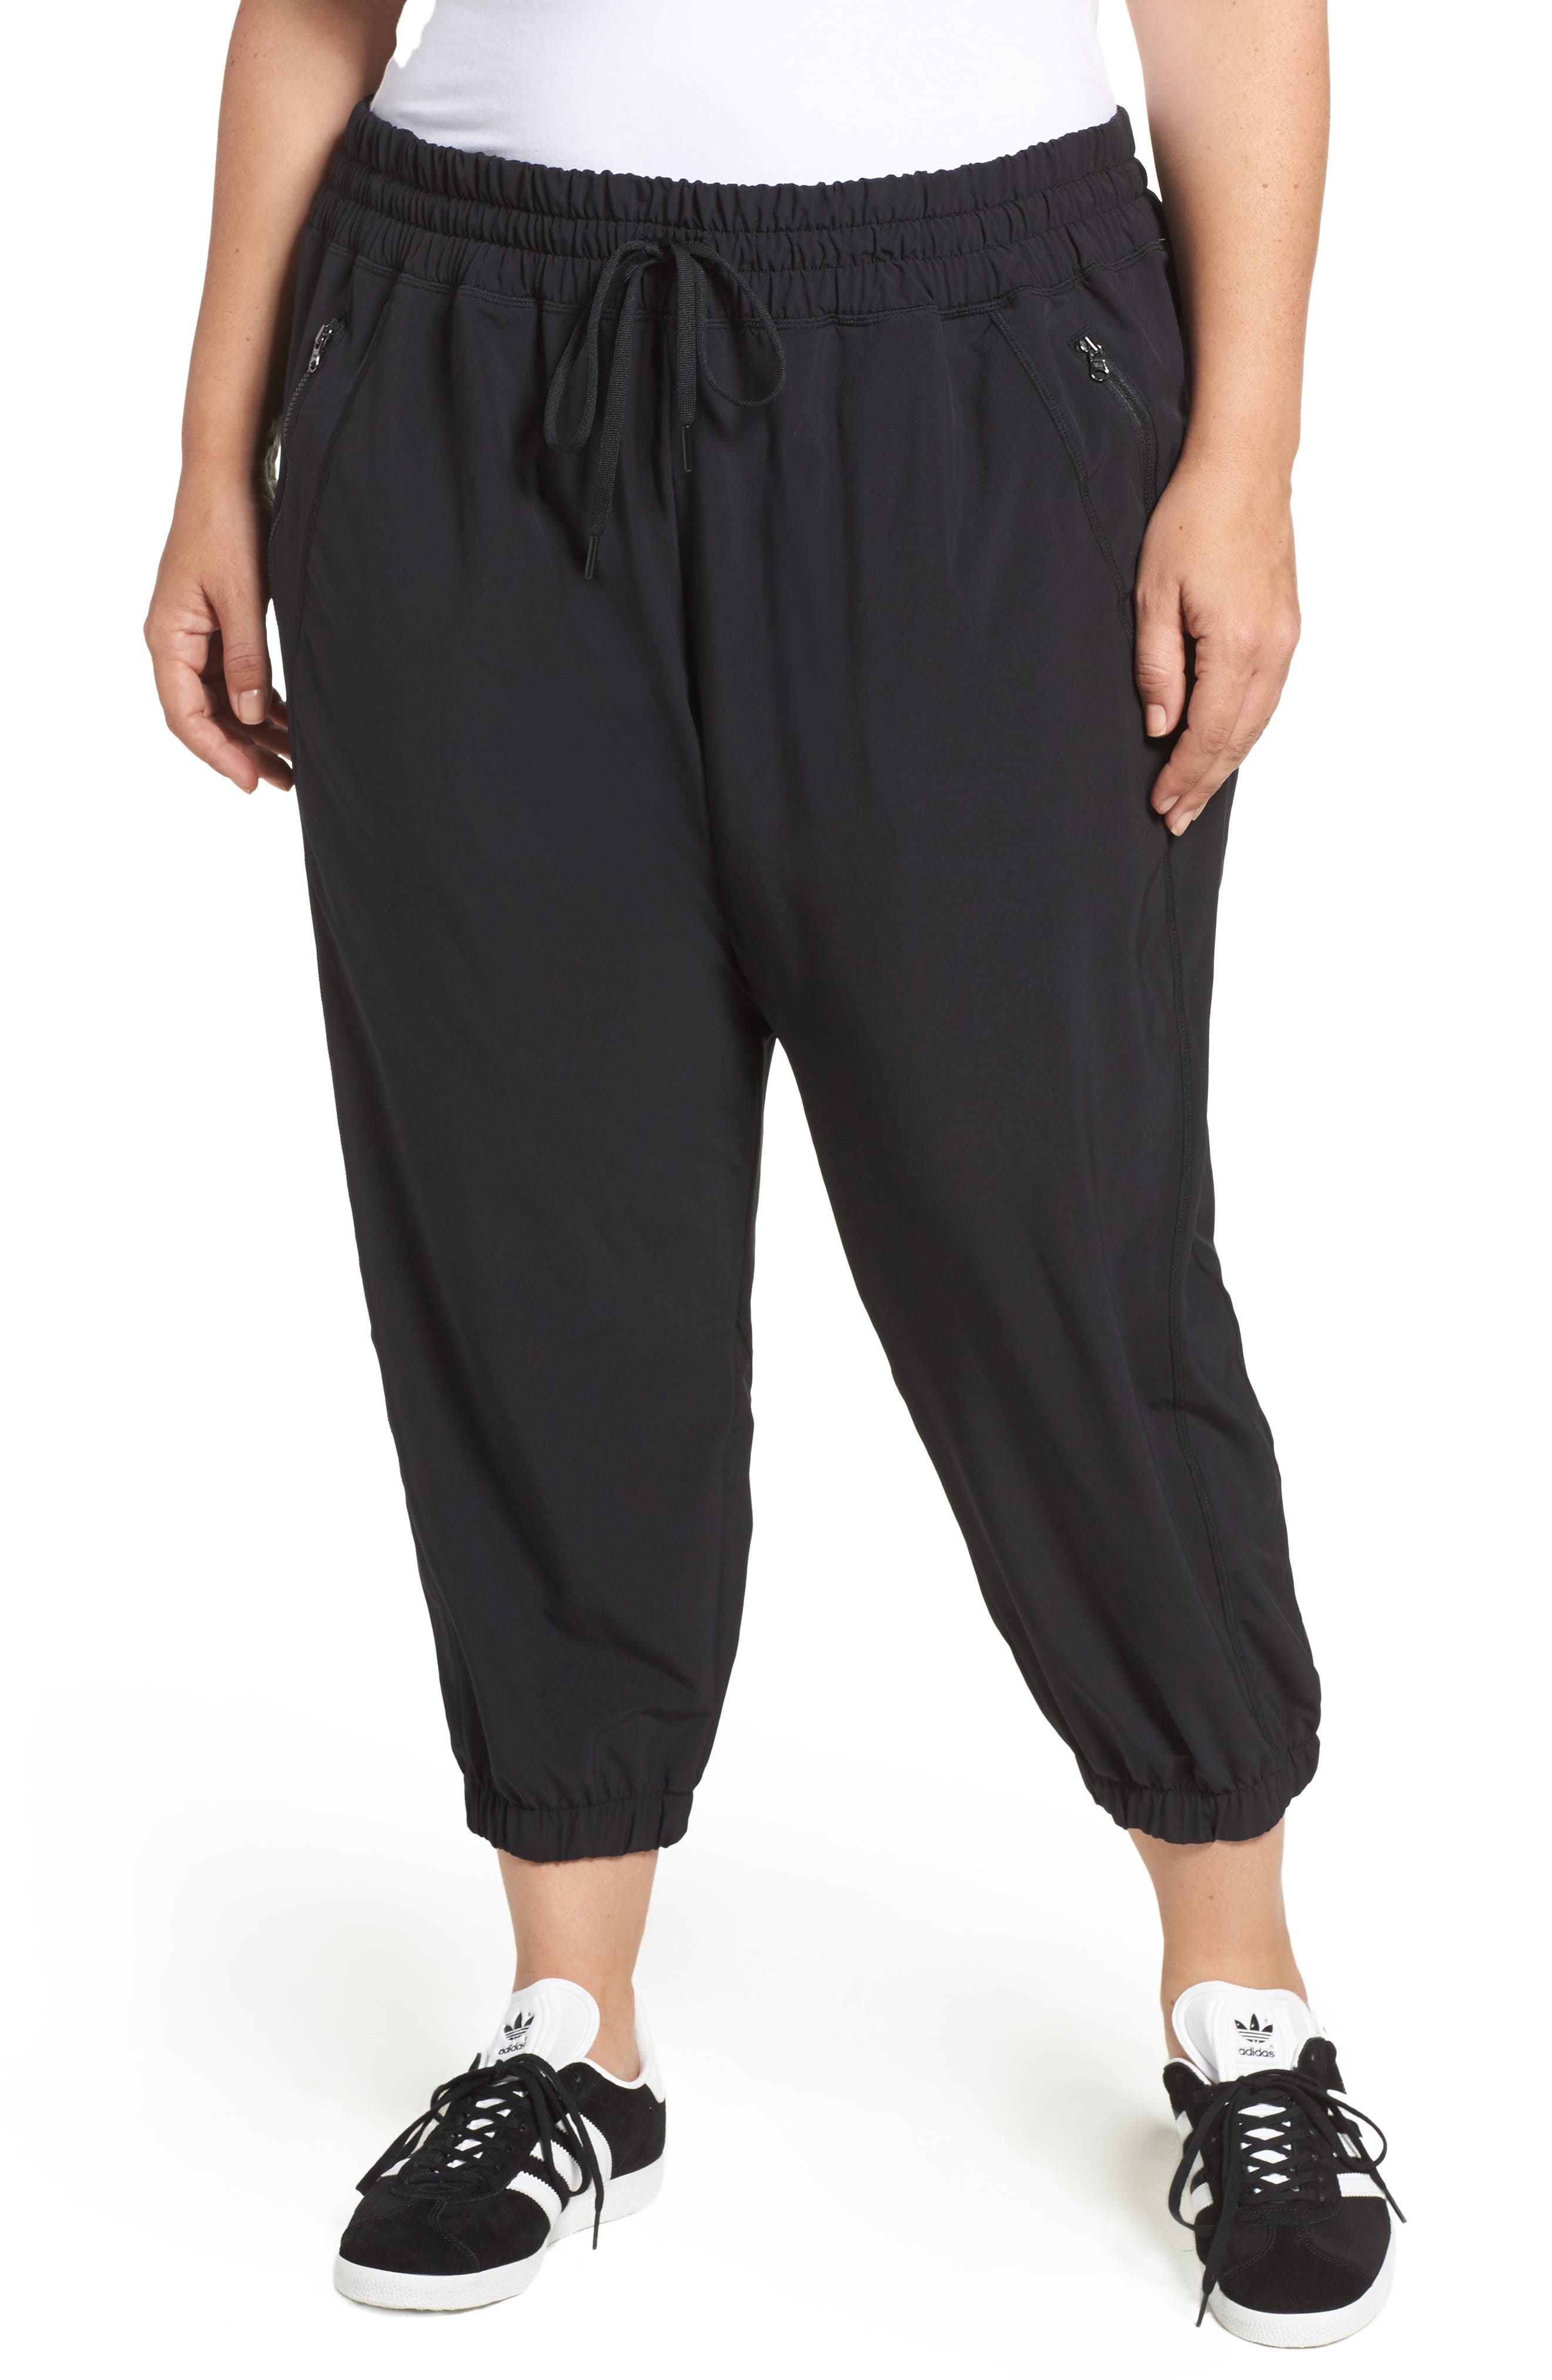 Zella Out & About Crop Jogger Pants (Plus Size)